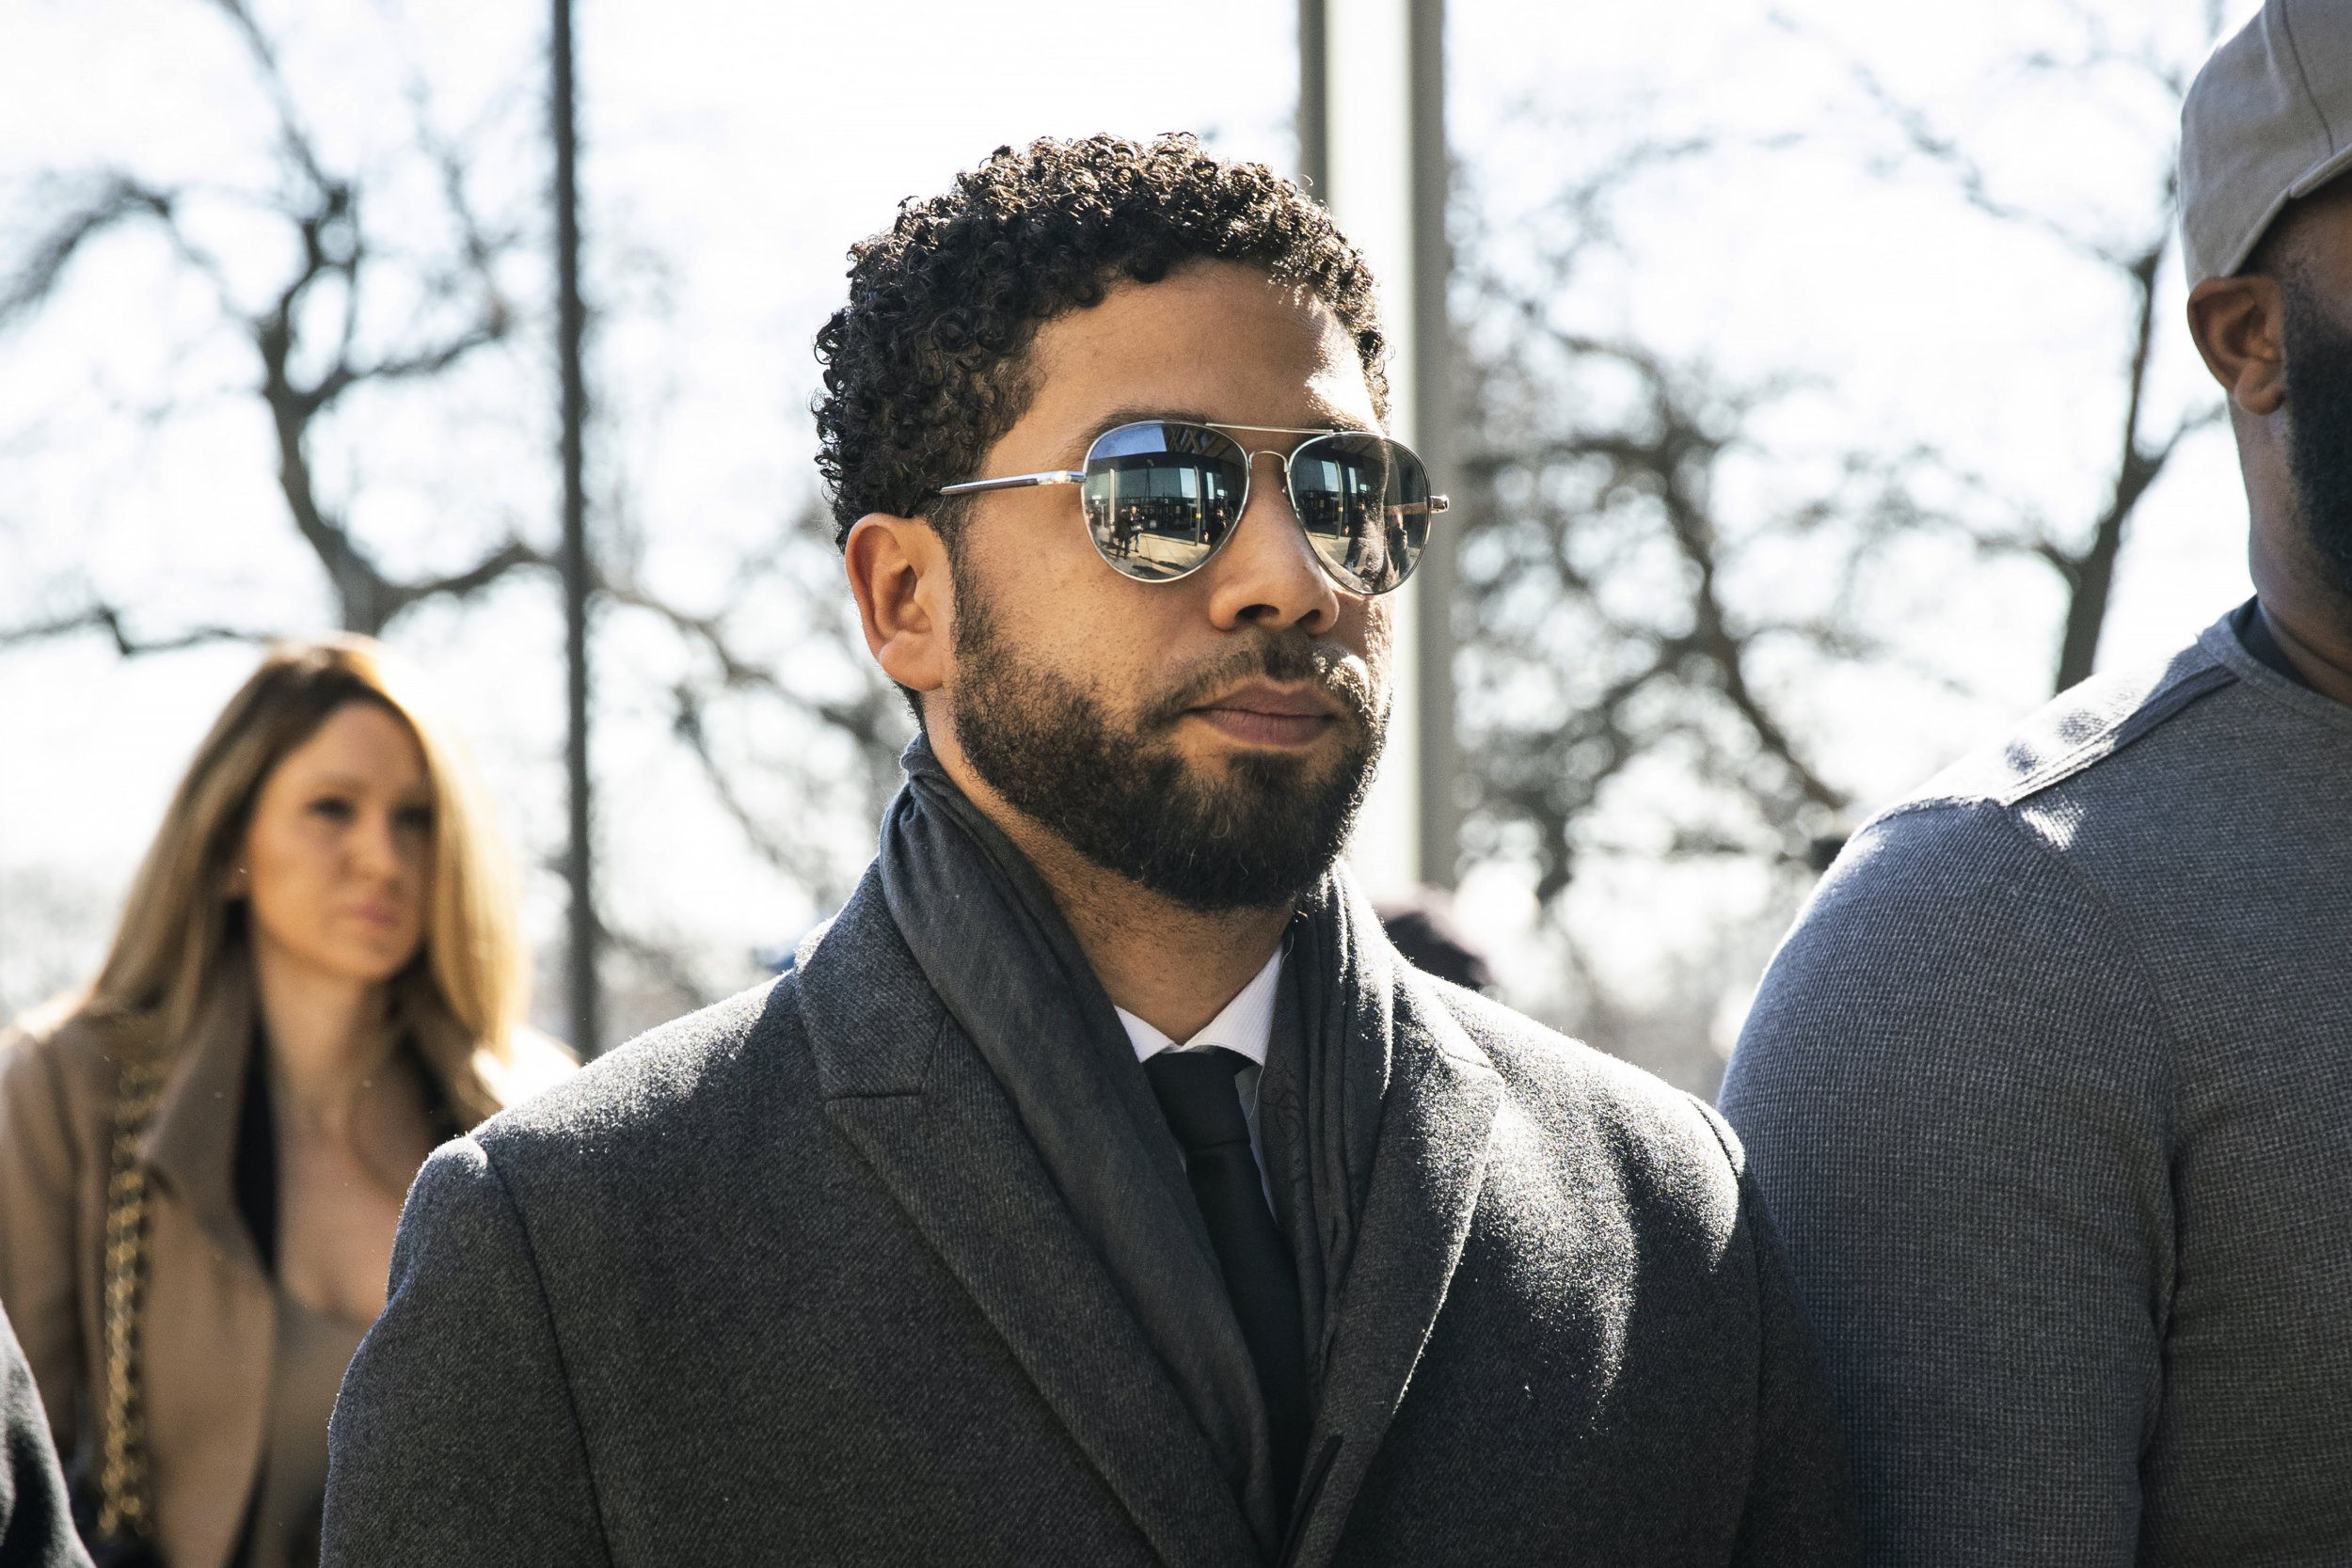 """Empire"" actor Jussie Smollett, center, arrives at Leighton Criminal Court Building for a hearing to discuss whether cameras will be allowed in the courtroom during his disorderly conduct case on Tuesday, March 12, 2019, in Chicago. A grand jury indicted Smollett last week on 16 felony counts accusing him of lying to the police about being the victim of a racist and homophobic attack by two masked men in downtown Chicago. (Ashlee Rezin/Chicago Sun-Times via AP)"